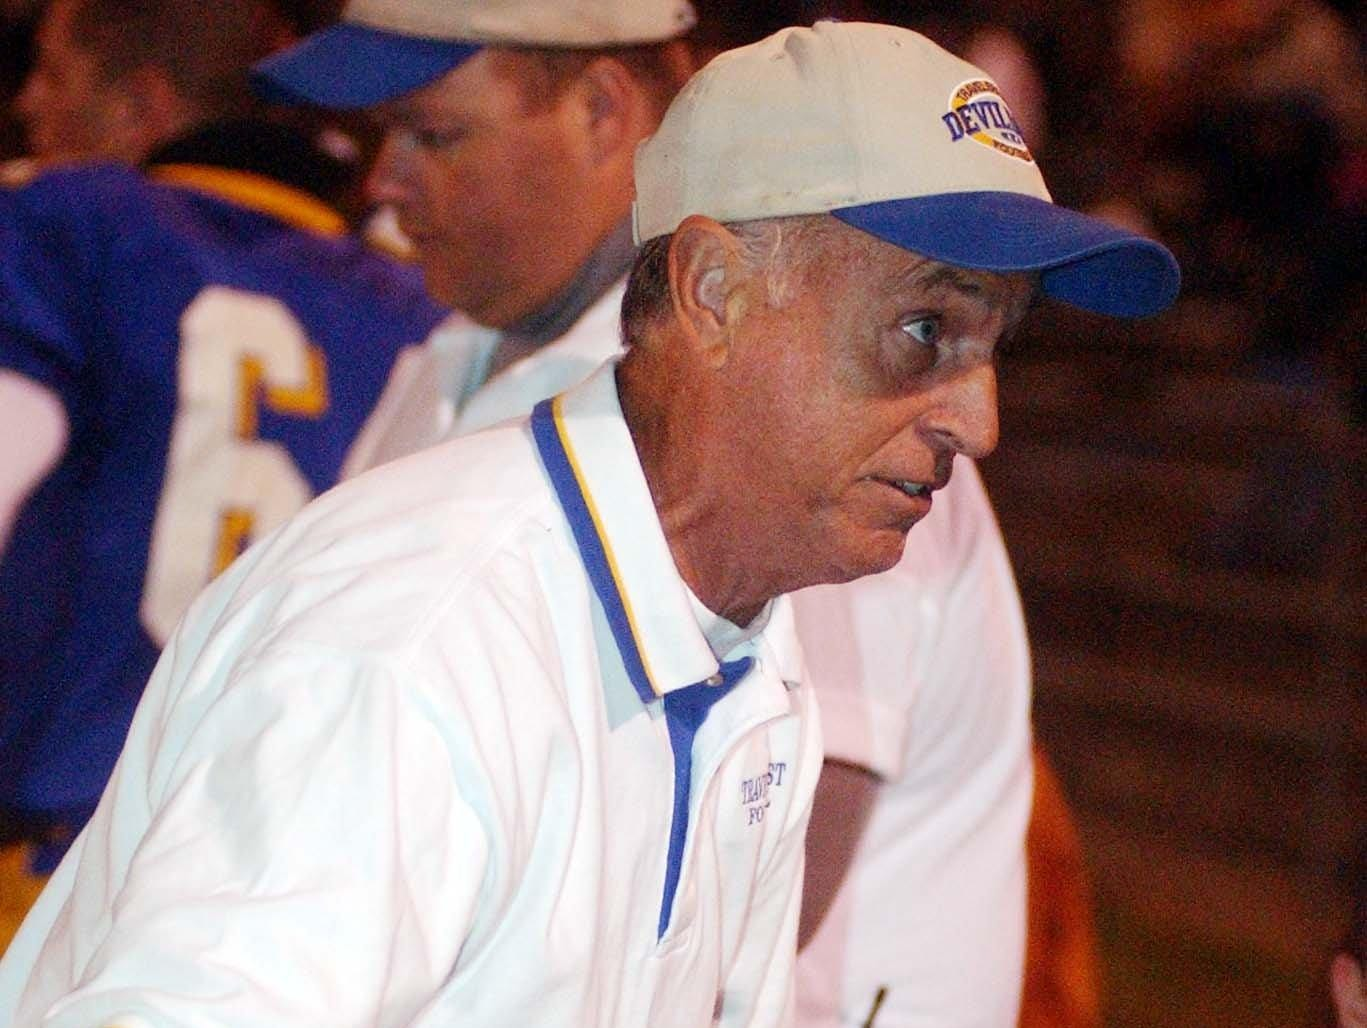 """George Harrelson has been a coach for the past 44 years, including 40 at the high school level. He will be honored at Saturday's FCA jamboree at North Greenville University as a """"Coach of Influence."""""""